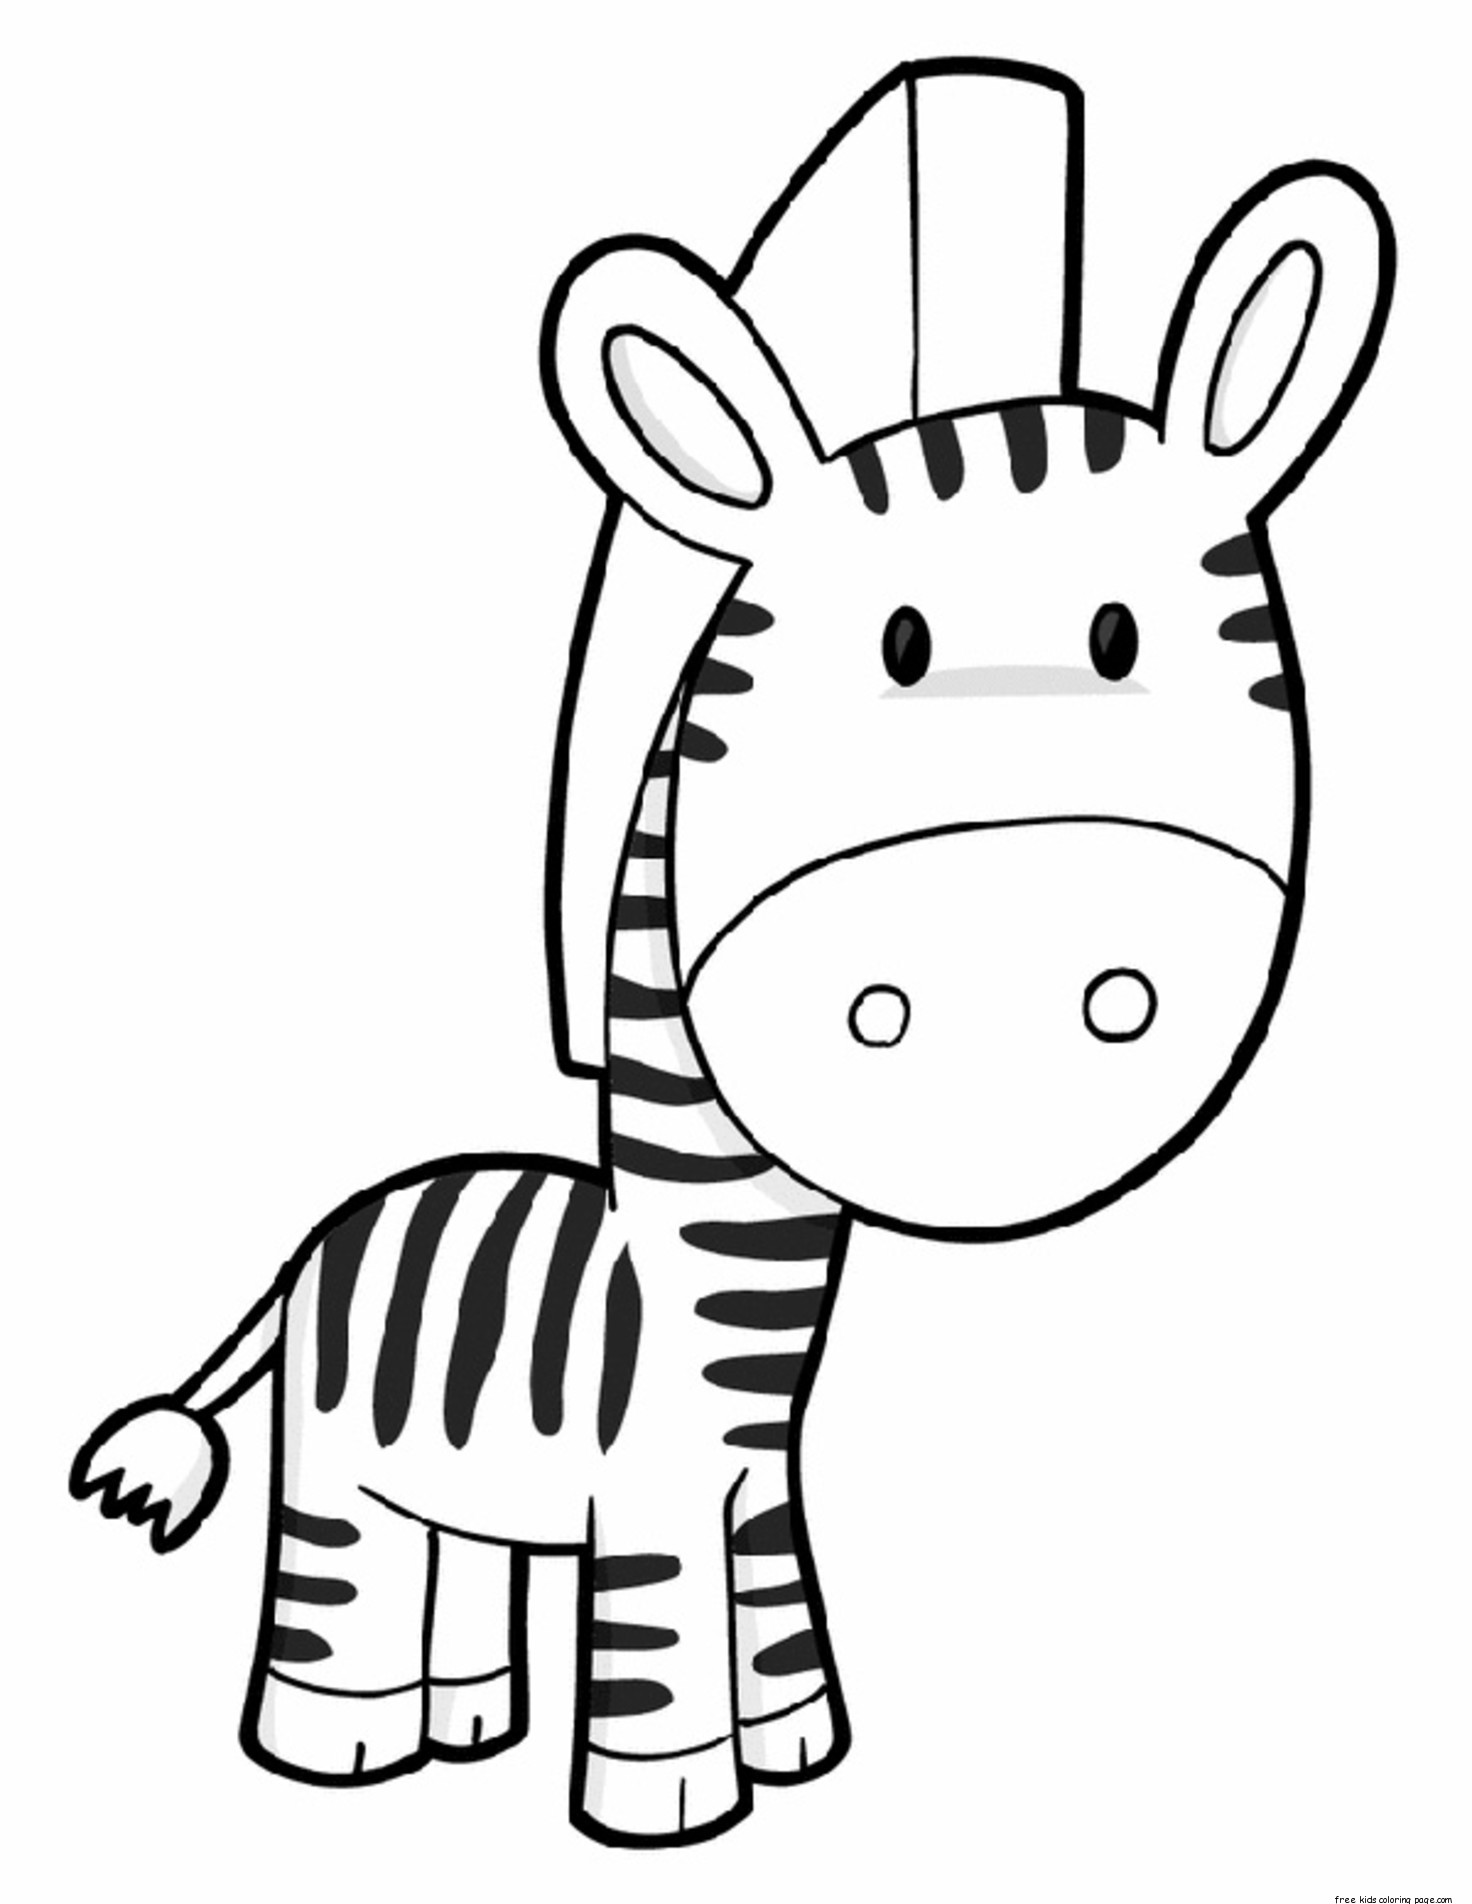 zebra face coloring page cute zebra clipart at getdrawings free download coloring page face zebra